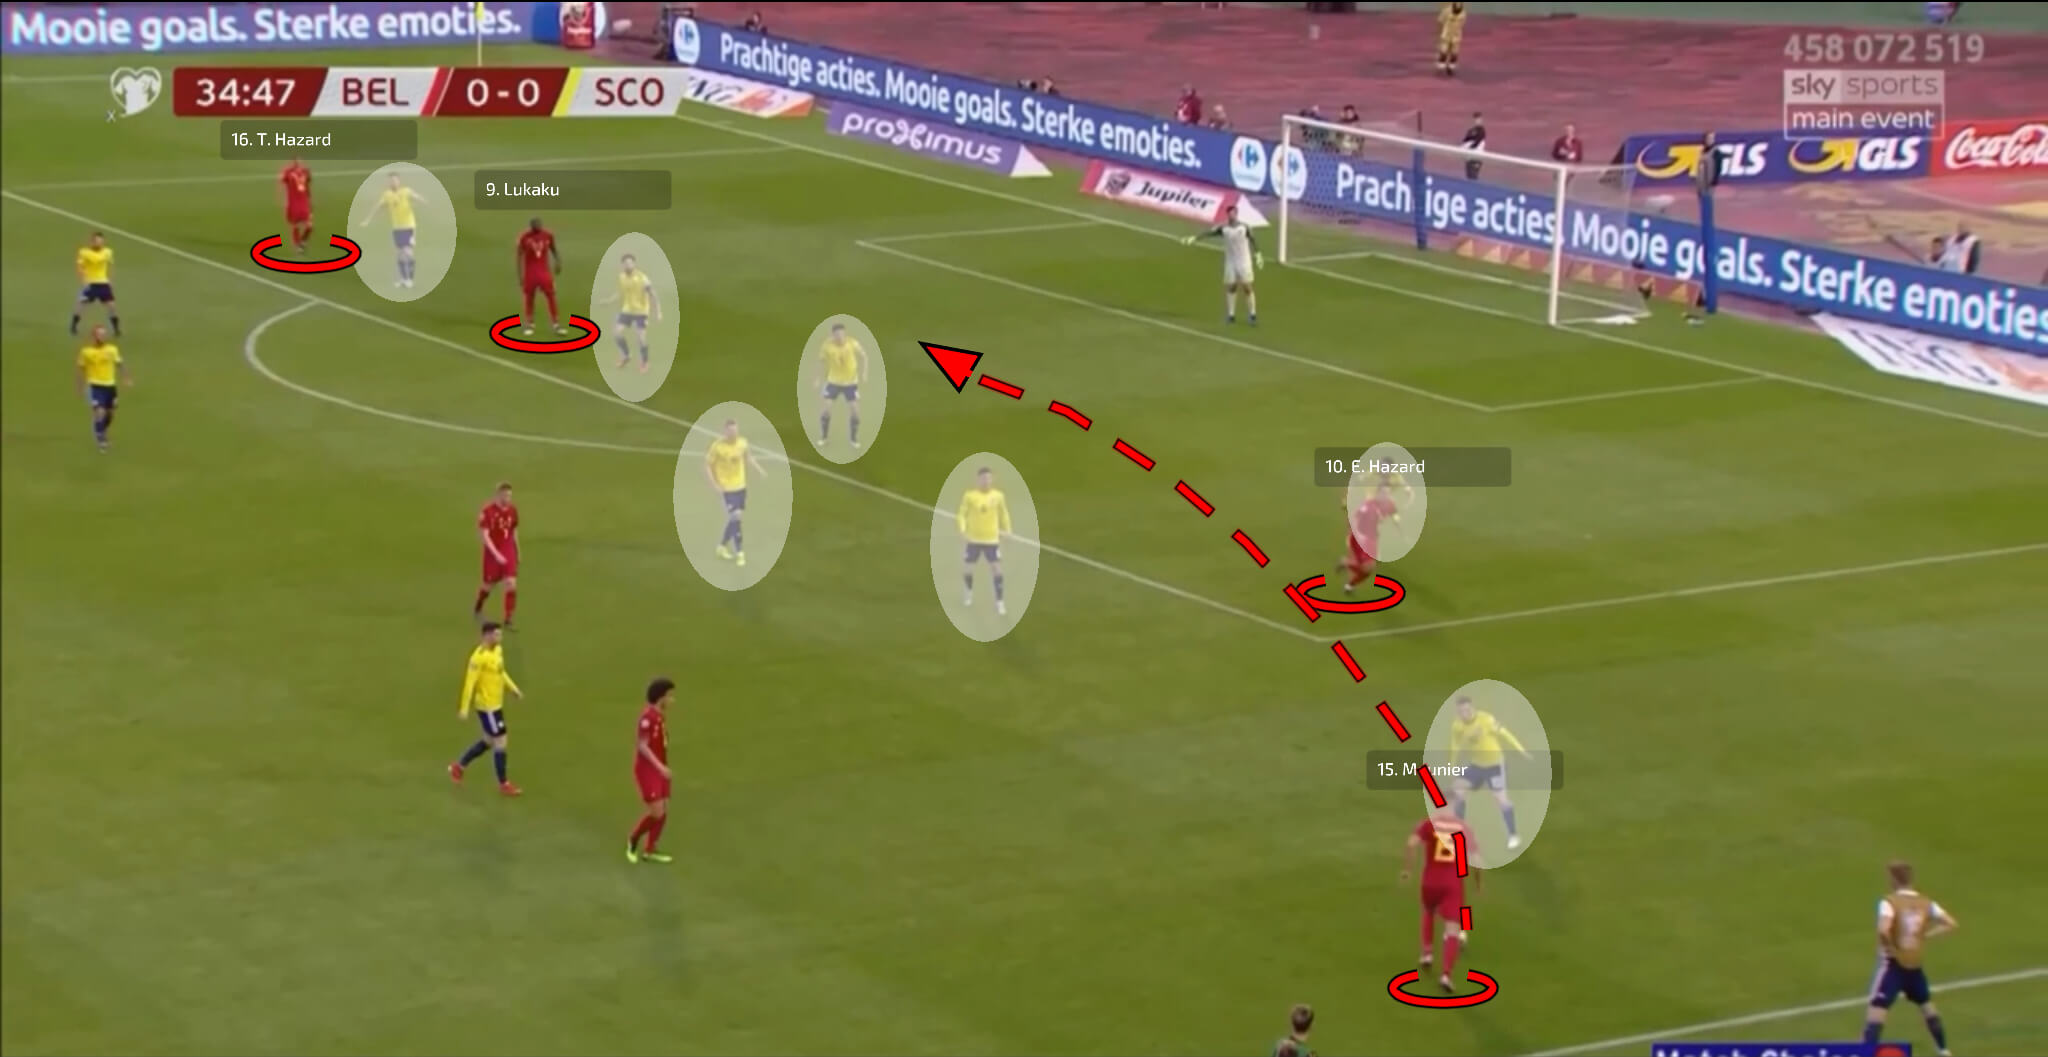 UEFA Euro 2020 Qualifiers: Belgium v Scotland - tactical analysis - tactics